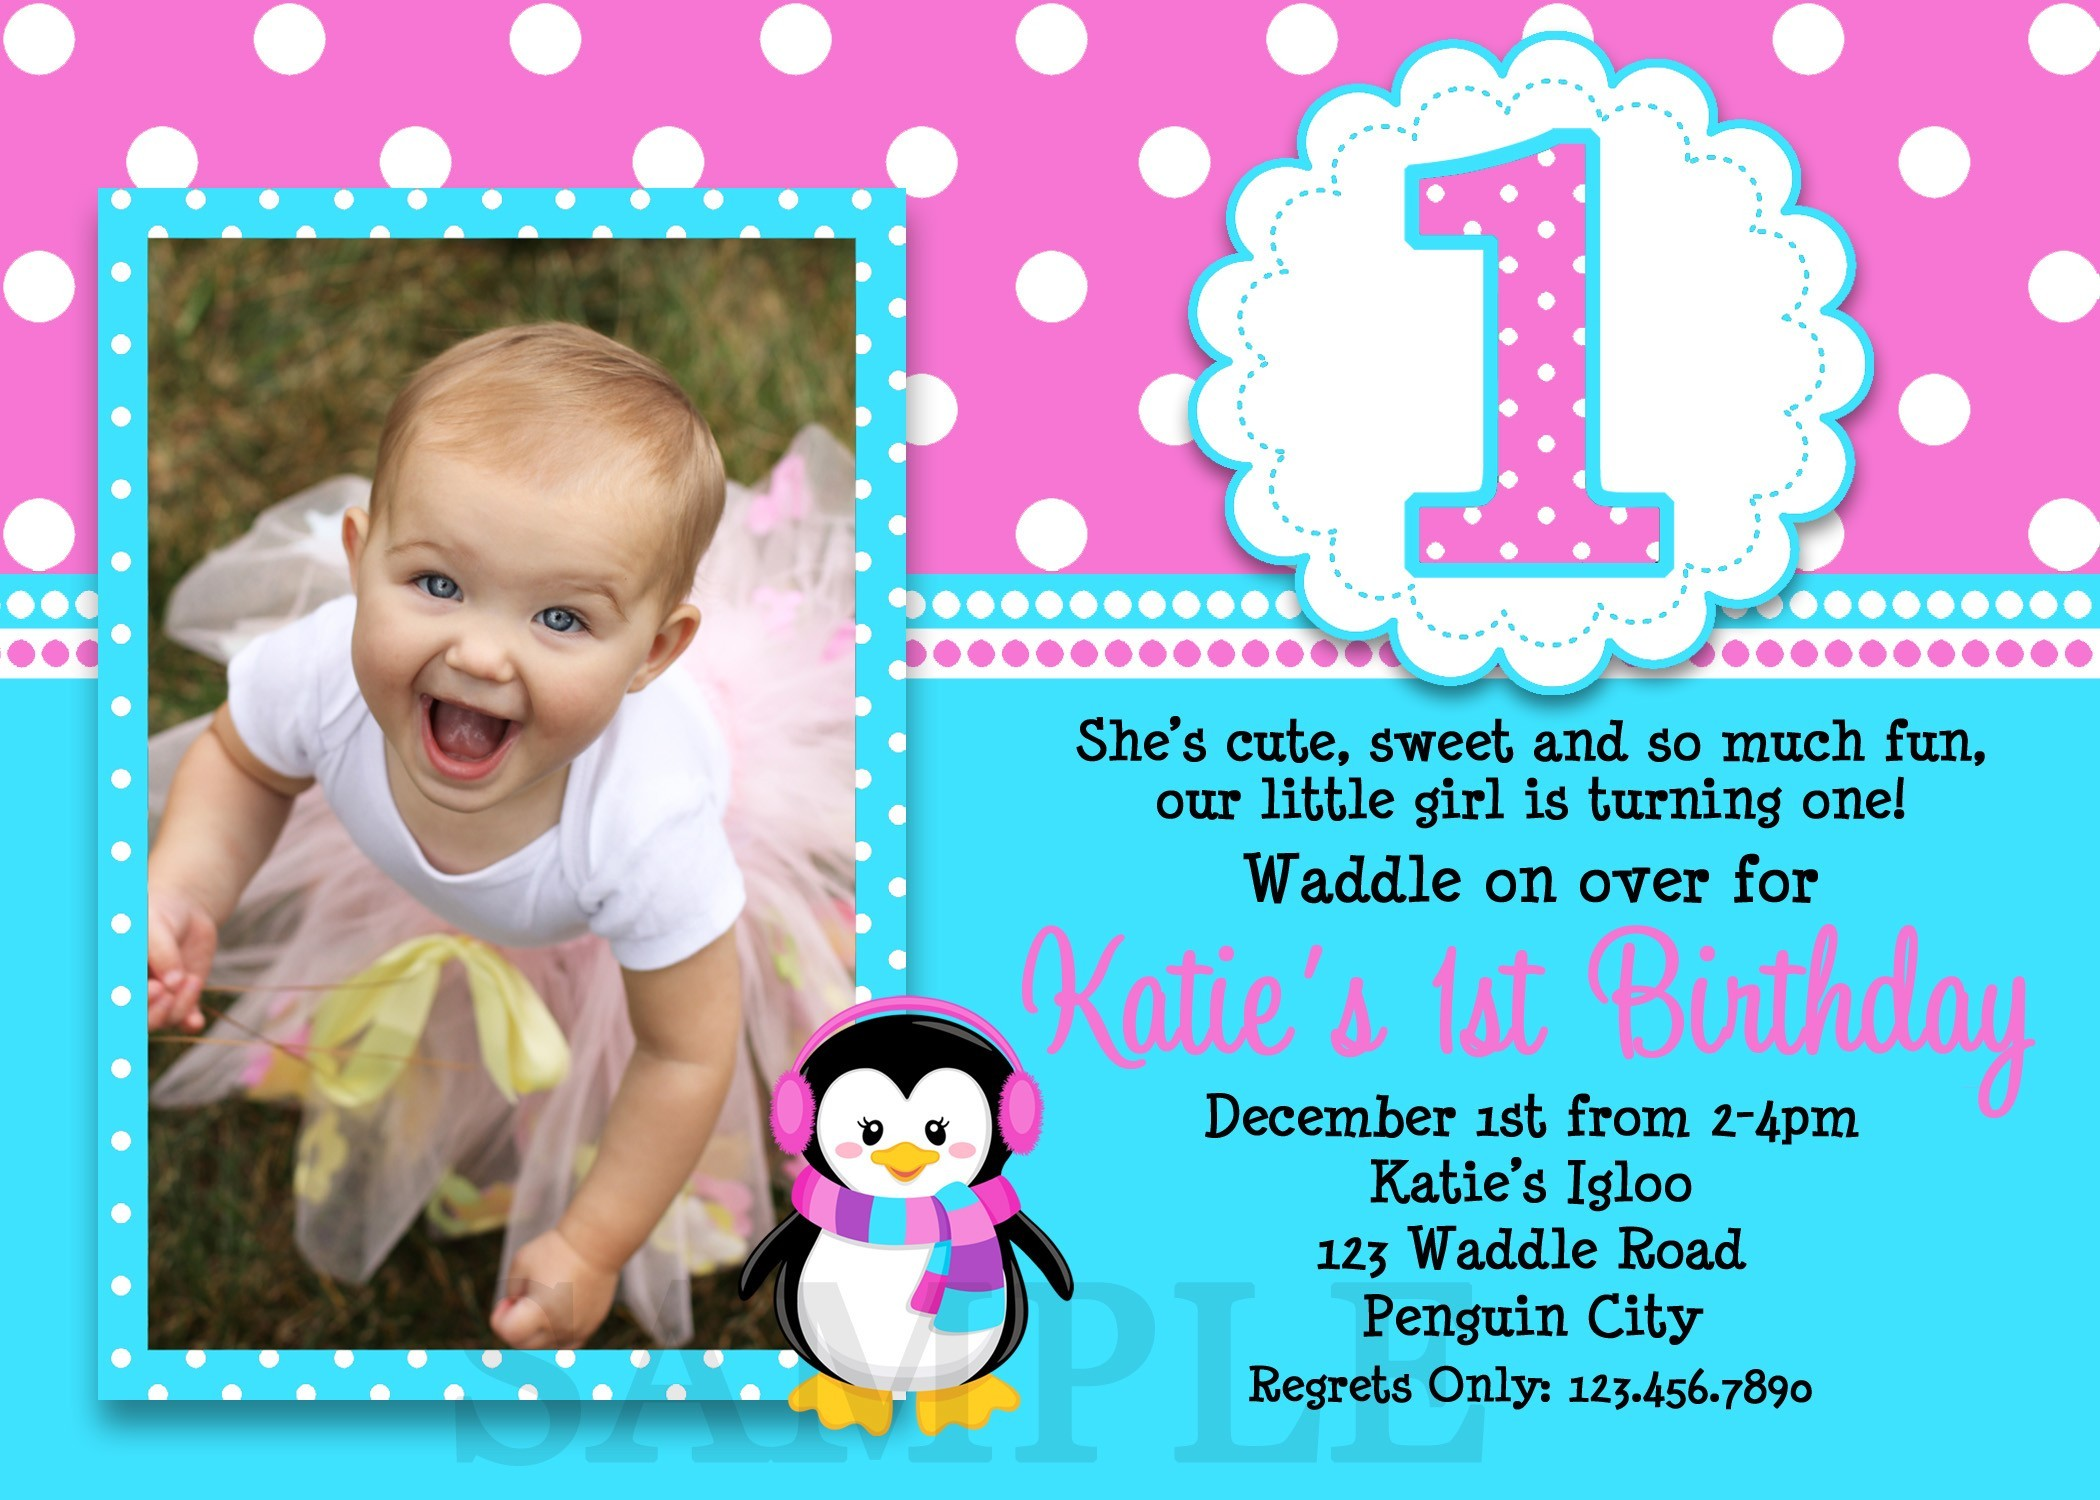 baby girl 1st birthday invitation sayings ; invitation-wordings-on-first-birthday-new-invitation-for-birthday-sms-new-1st-birthday-invitation-wording-of-invitation-wordings-on-first-birthday